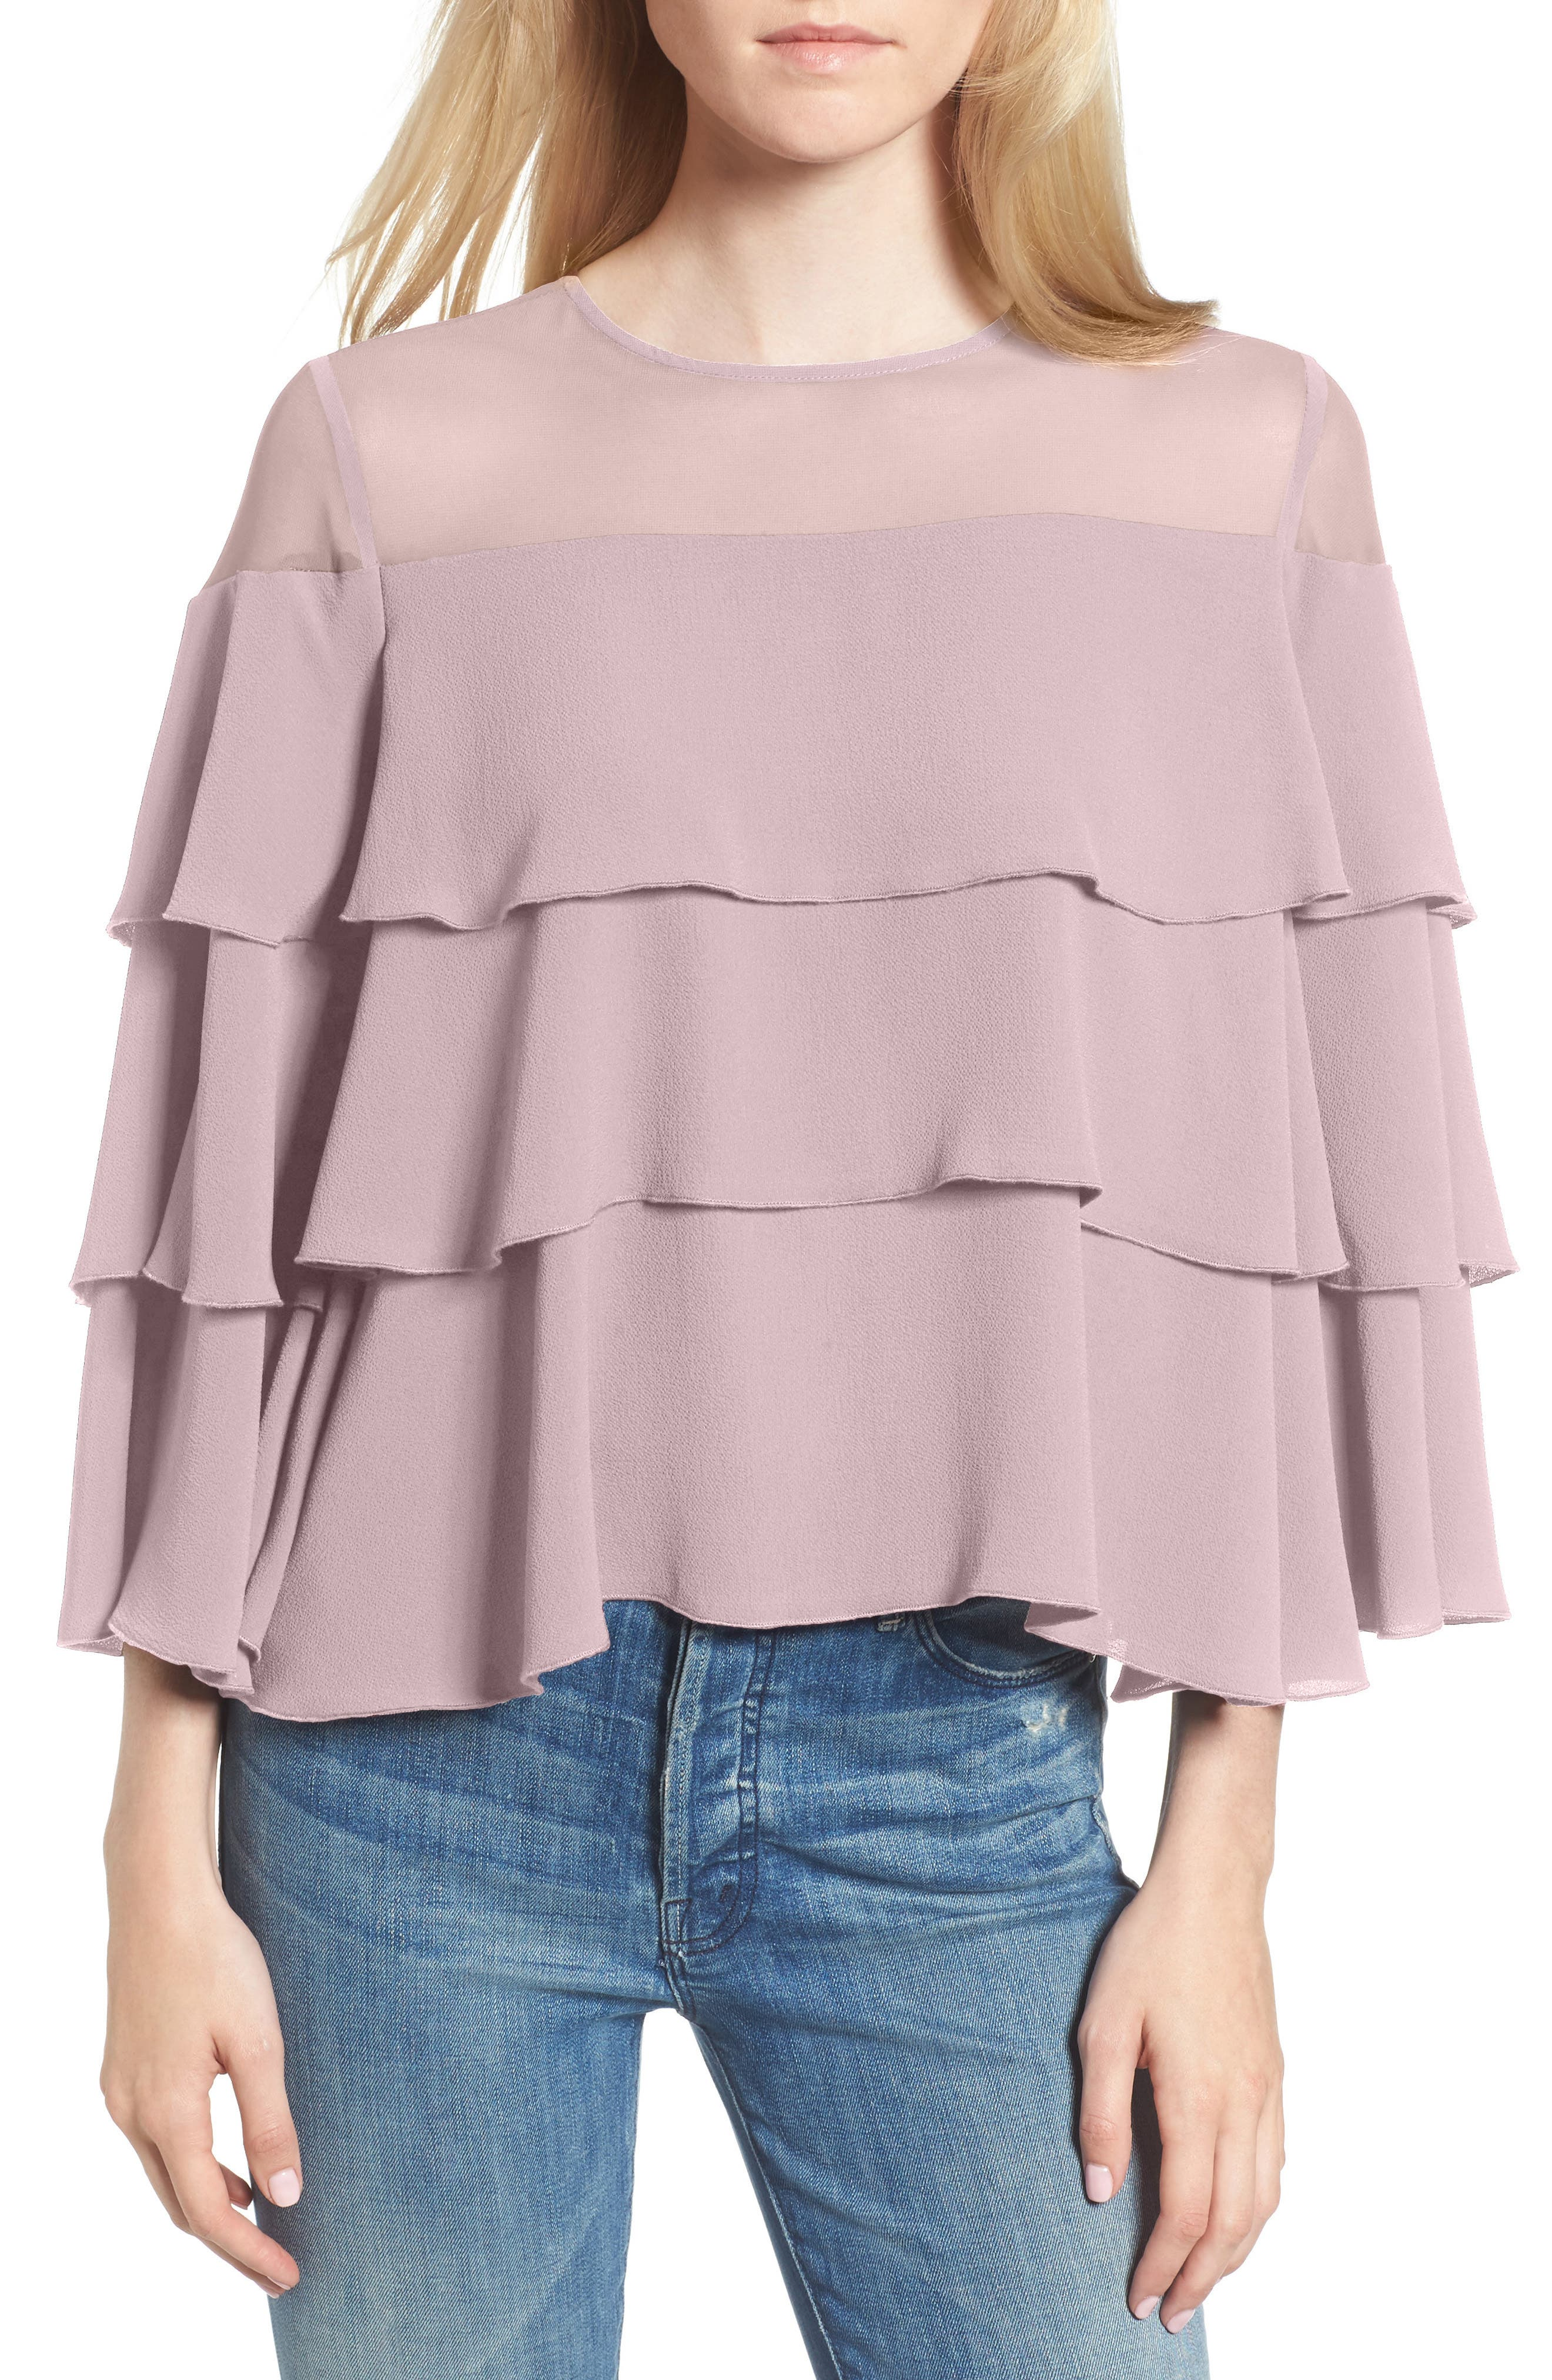 Medena Tiered Ruffle Top,                             Main thumbnail 1, color,                             Pale Lavender